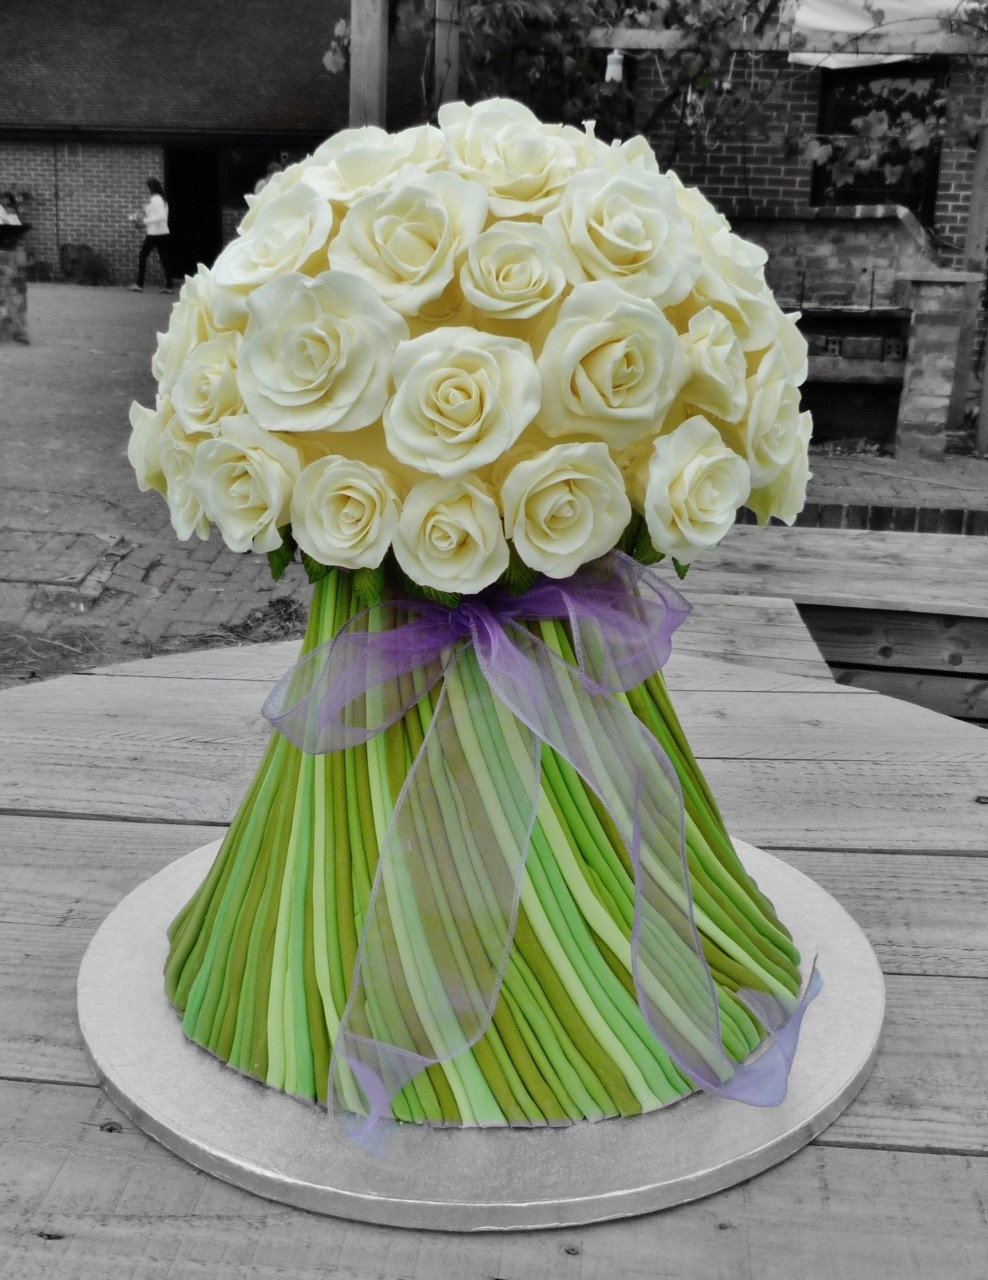 11 roses flower bouquet cakes photo cake flower bouquet birthday rose bouquet cake flowers izmirmasajfo